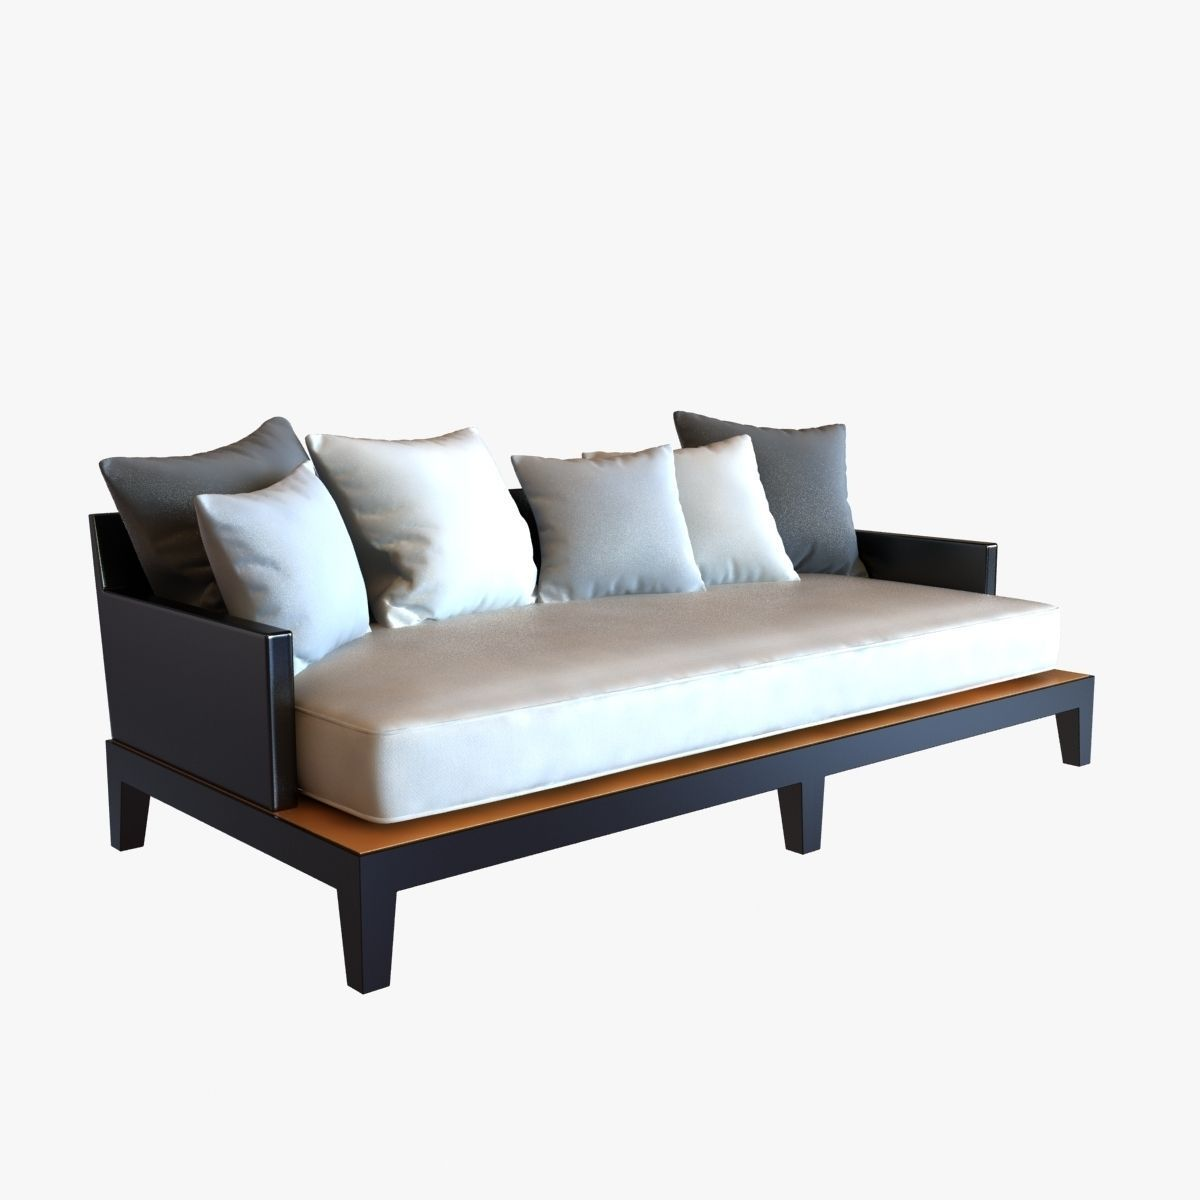 Christian liaigre sofa for holly hunt opium 3d model max for Model furniture